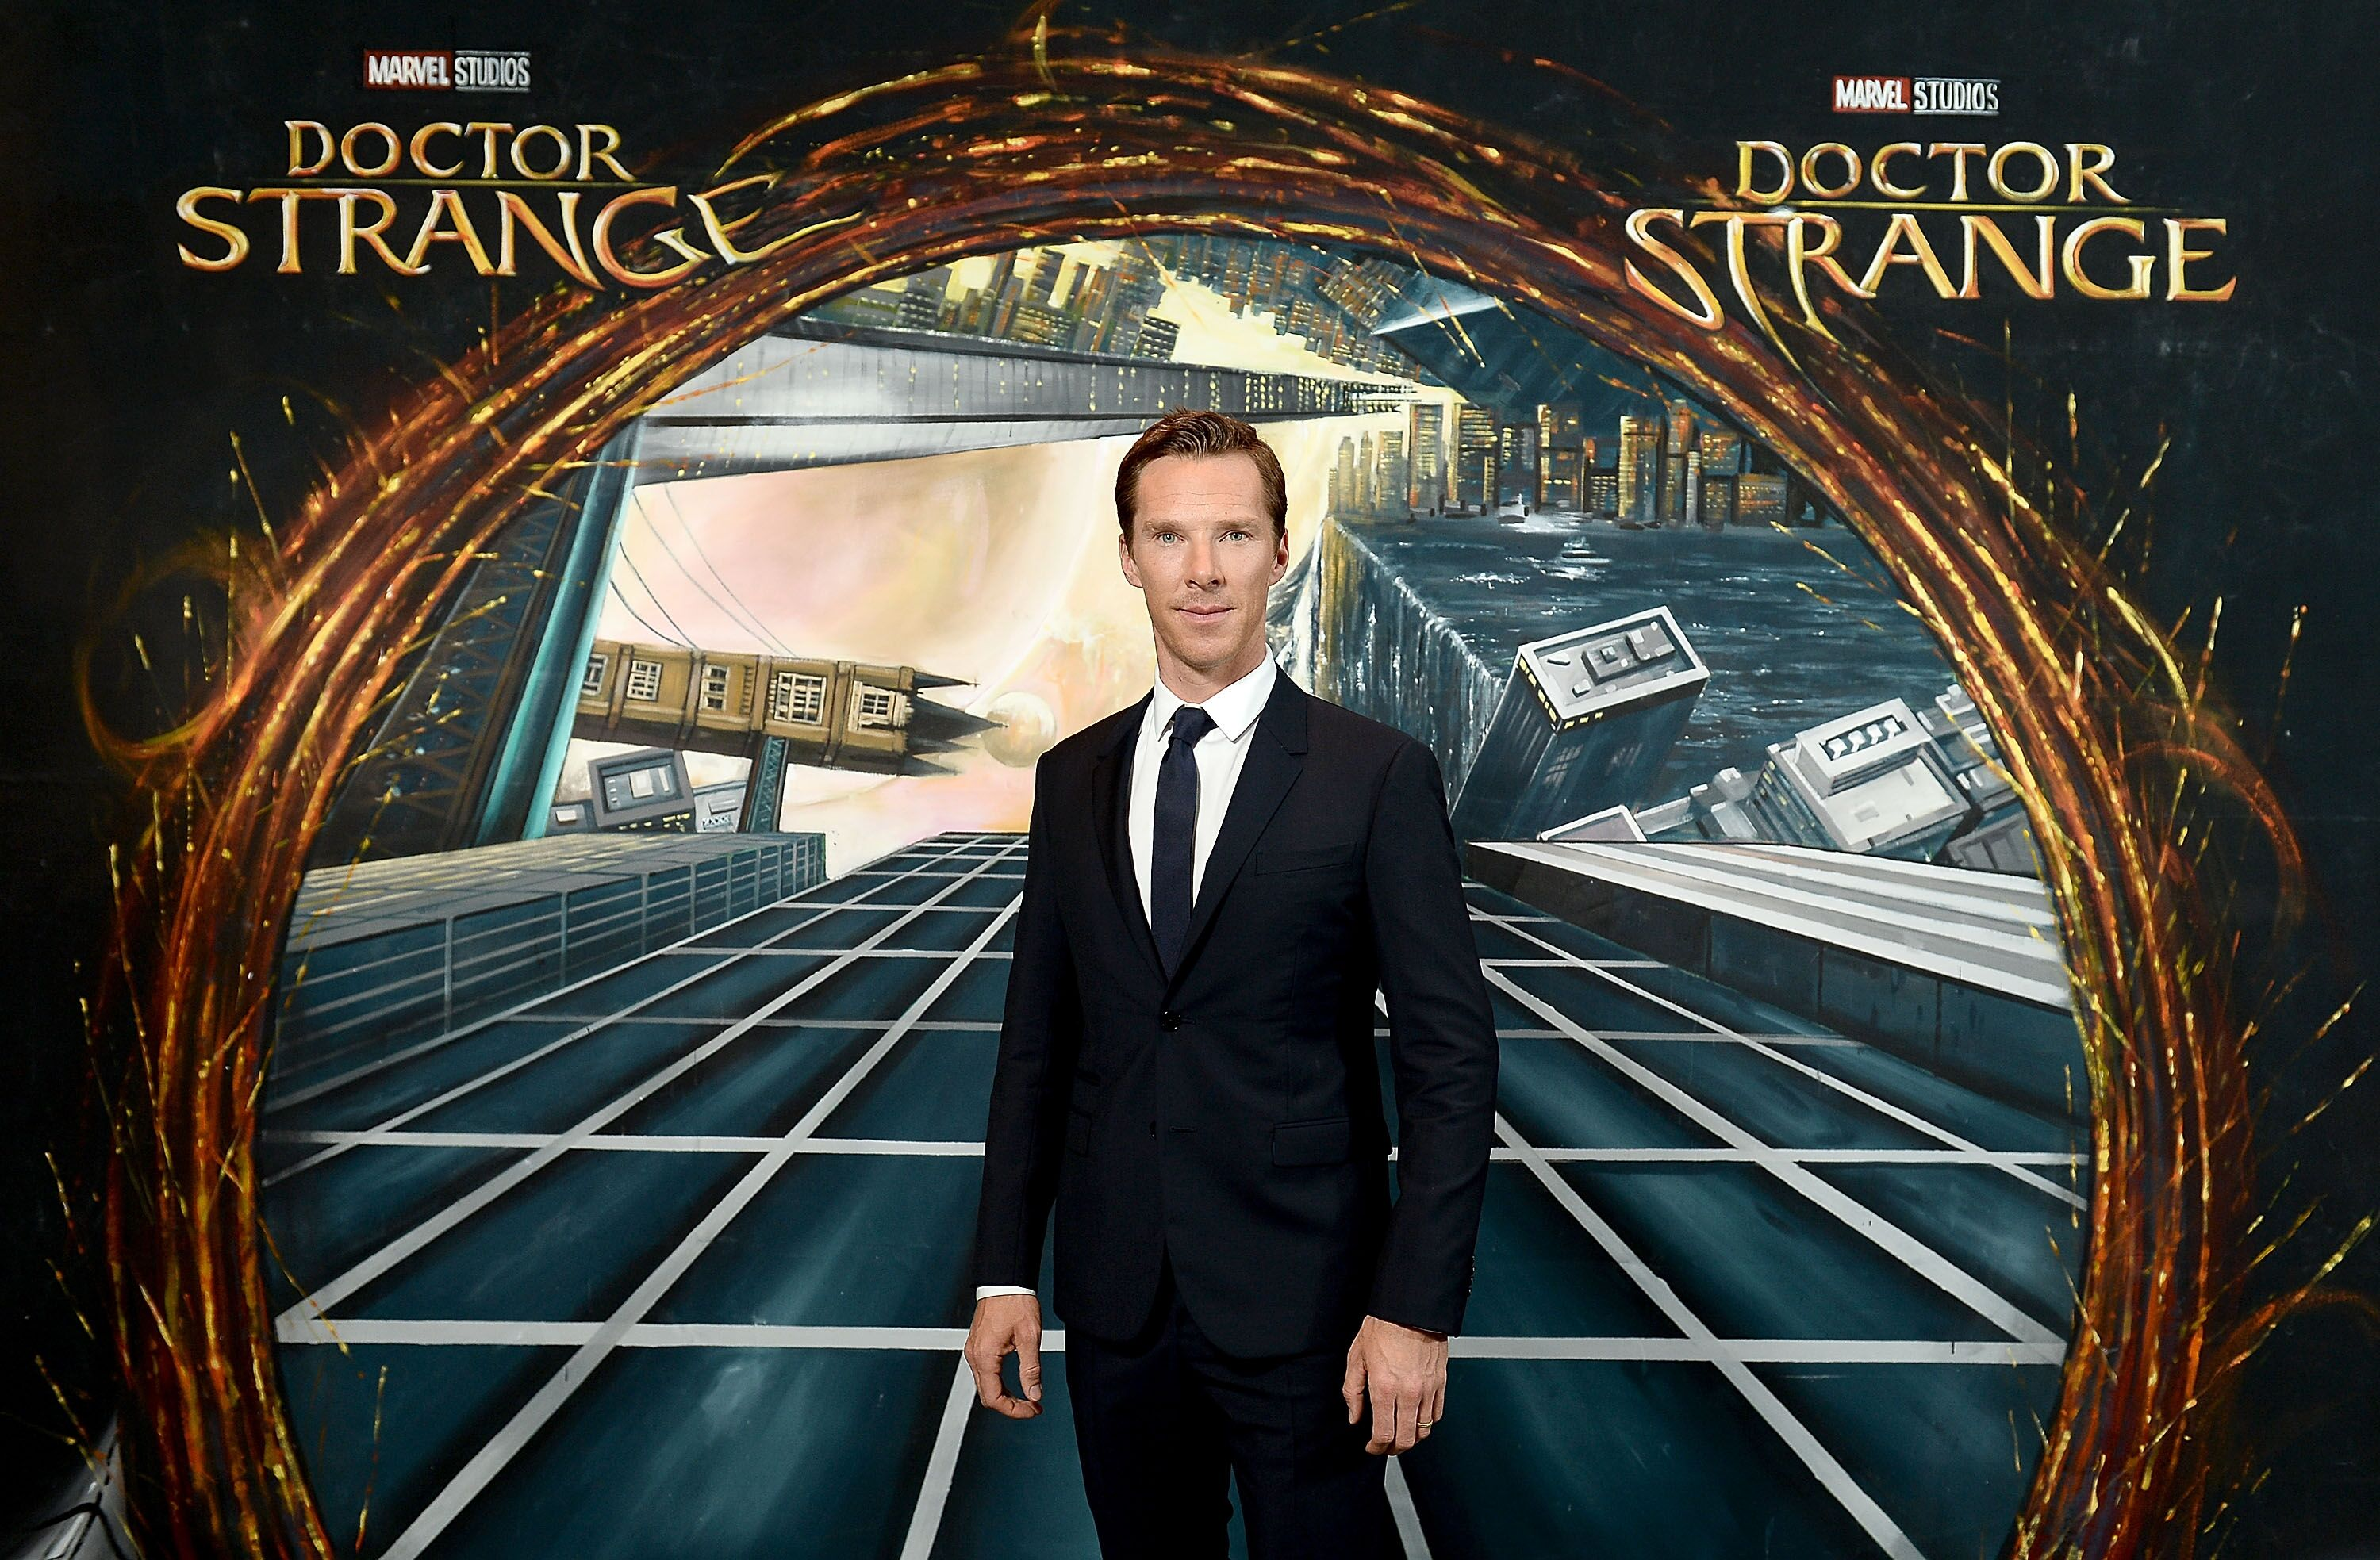 Doctor Strange sequel finds a familiar director